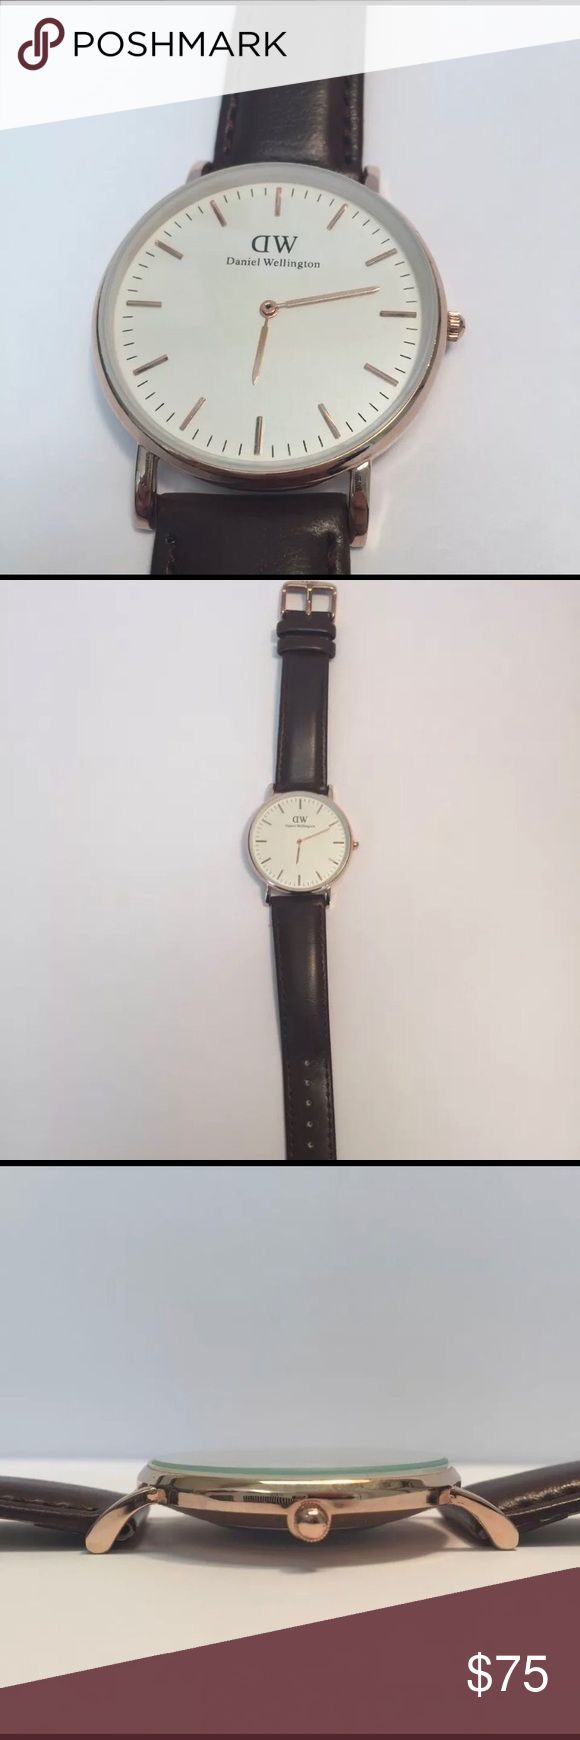 Daniel Wellington Men's Watch Daniel Wellington Men's Watch a/ Rose Gold casing and leather band. The glass needs to be reset but otherwise the watch has been fine. I am the second owner. Daniel Wellington Accessories Watches